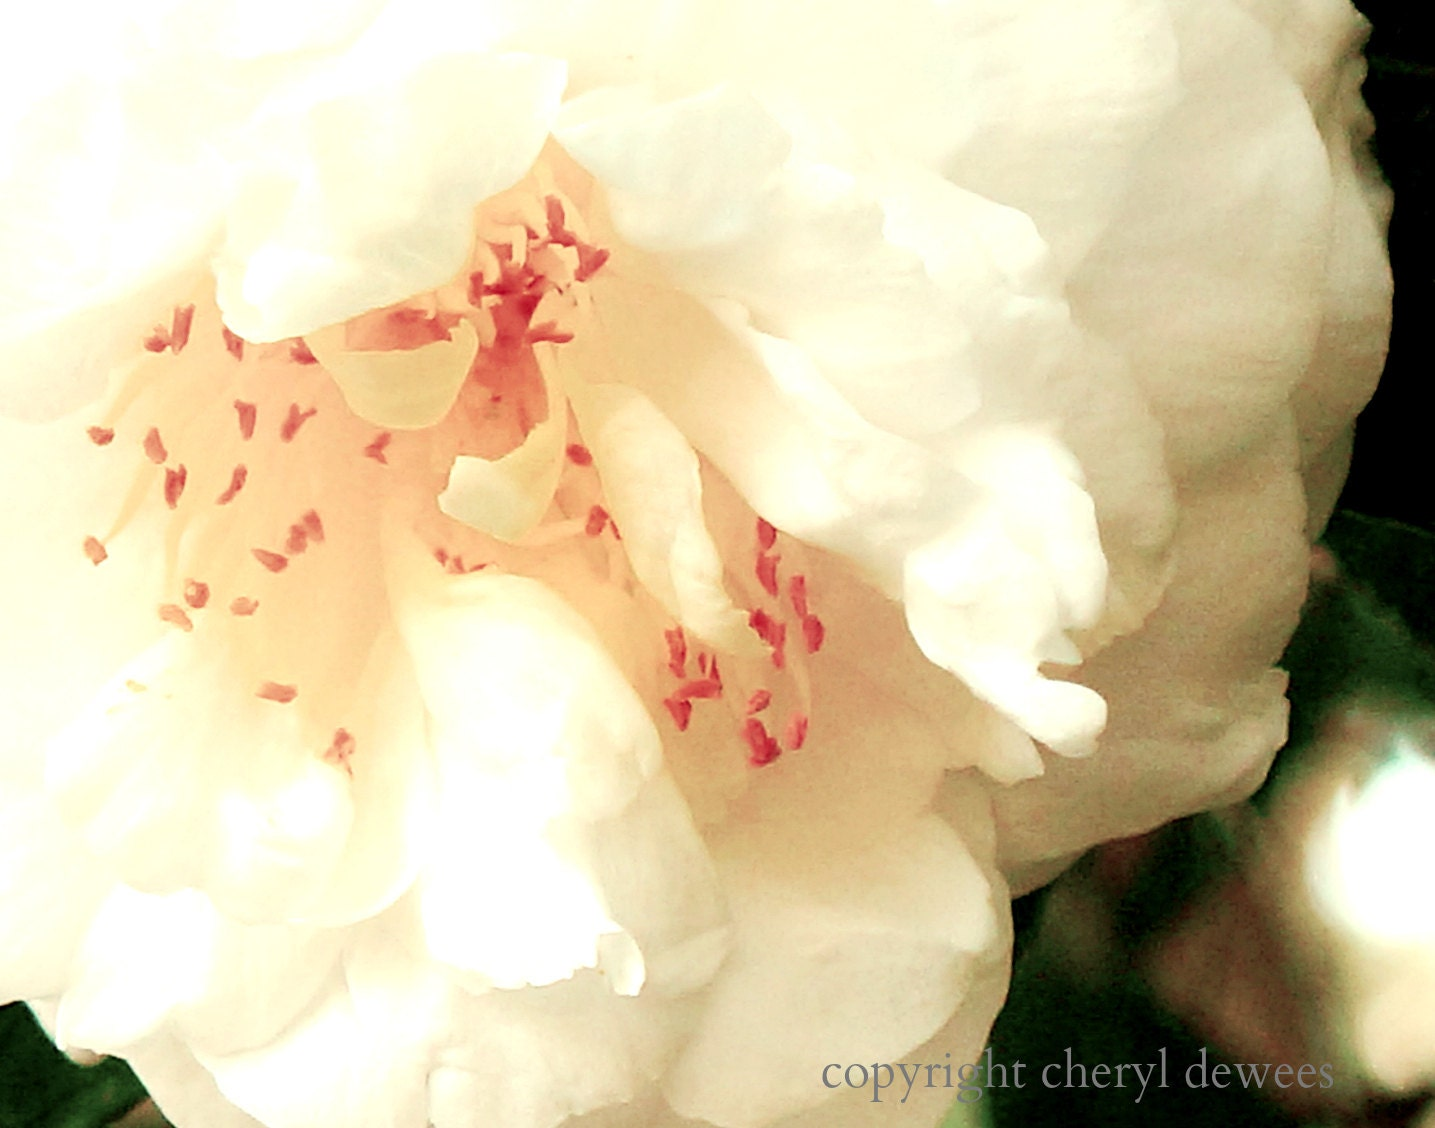 Blush/Fine Art Photo Print/Photography/Flower/Bloom/Pink - PointofViewCreations